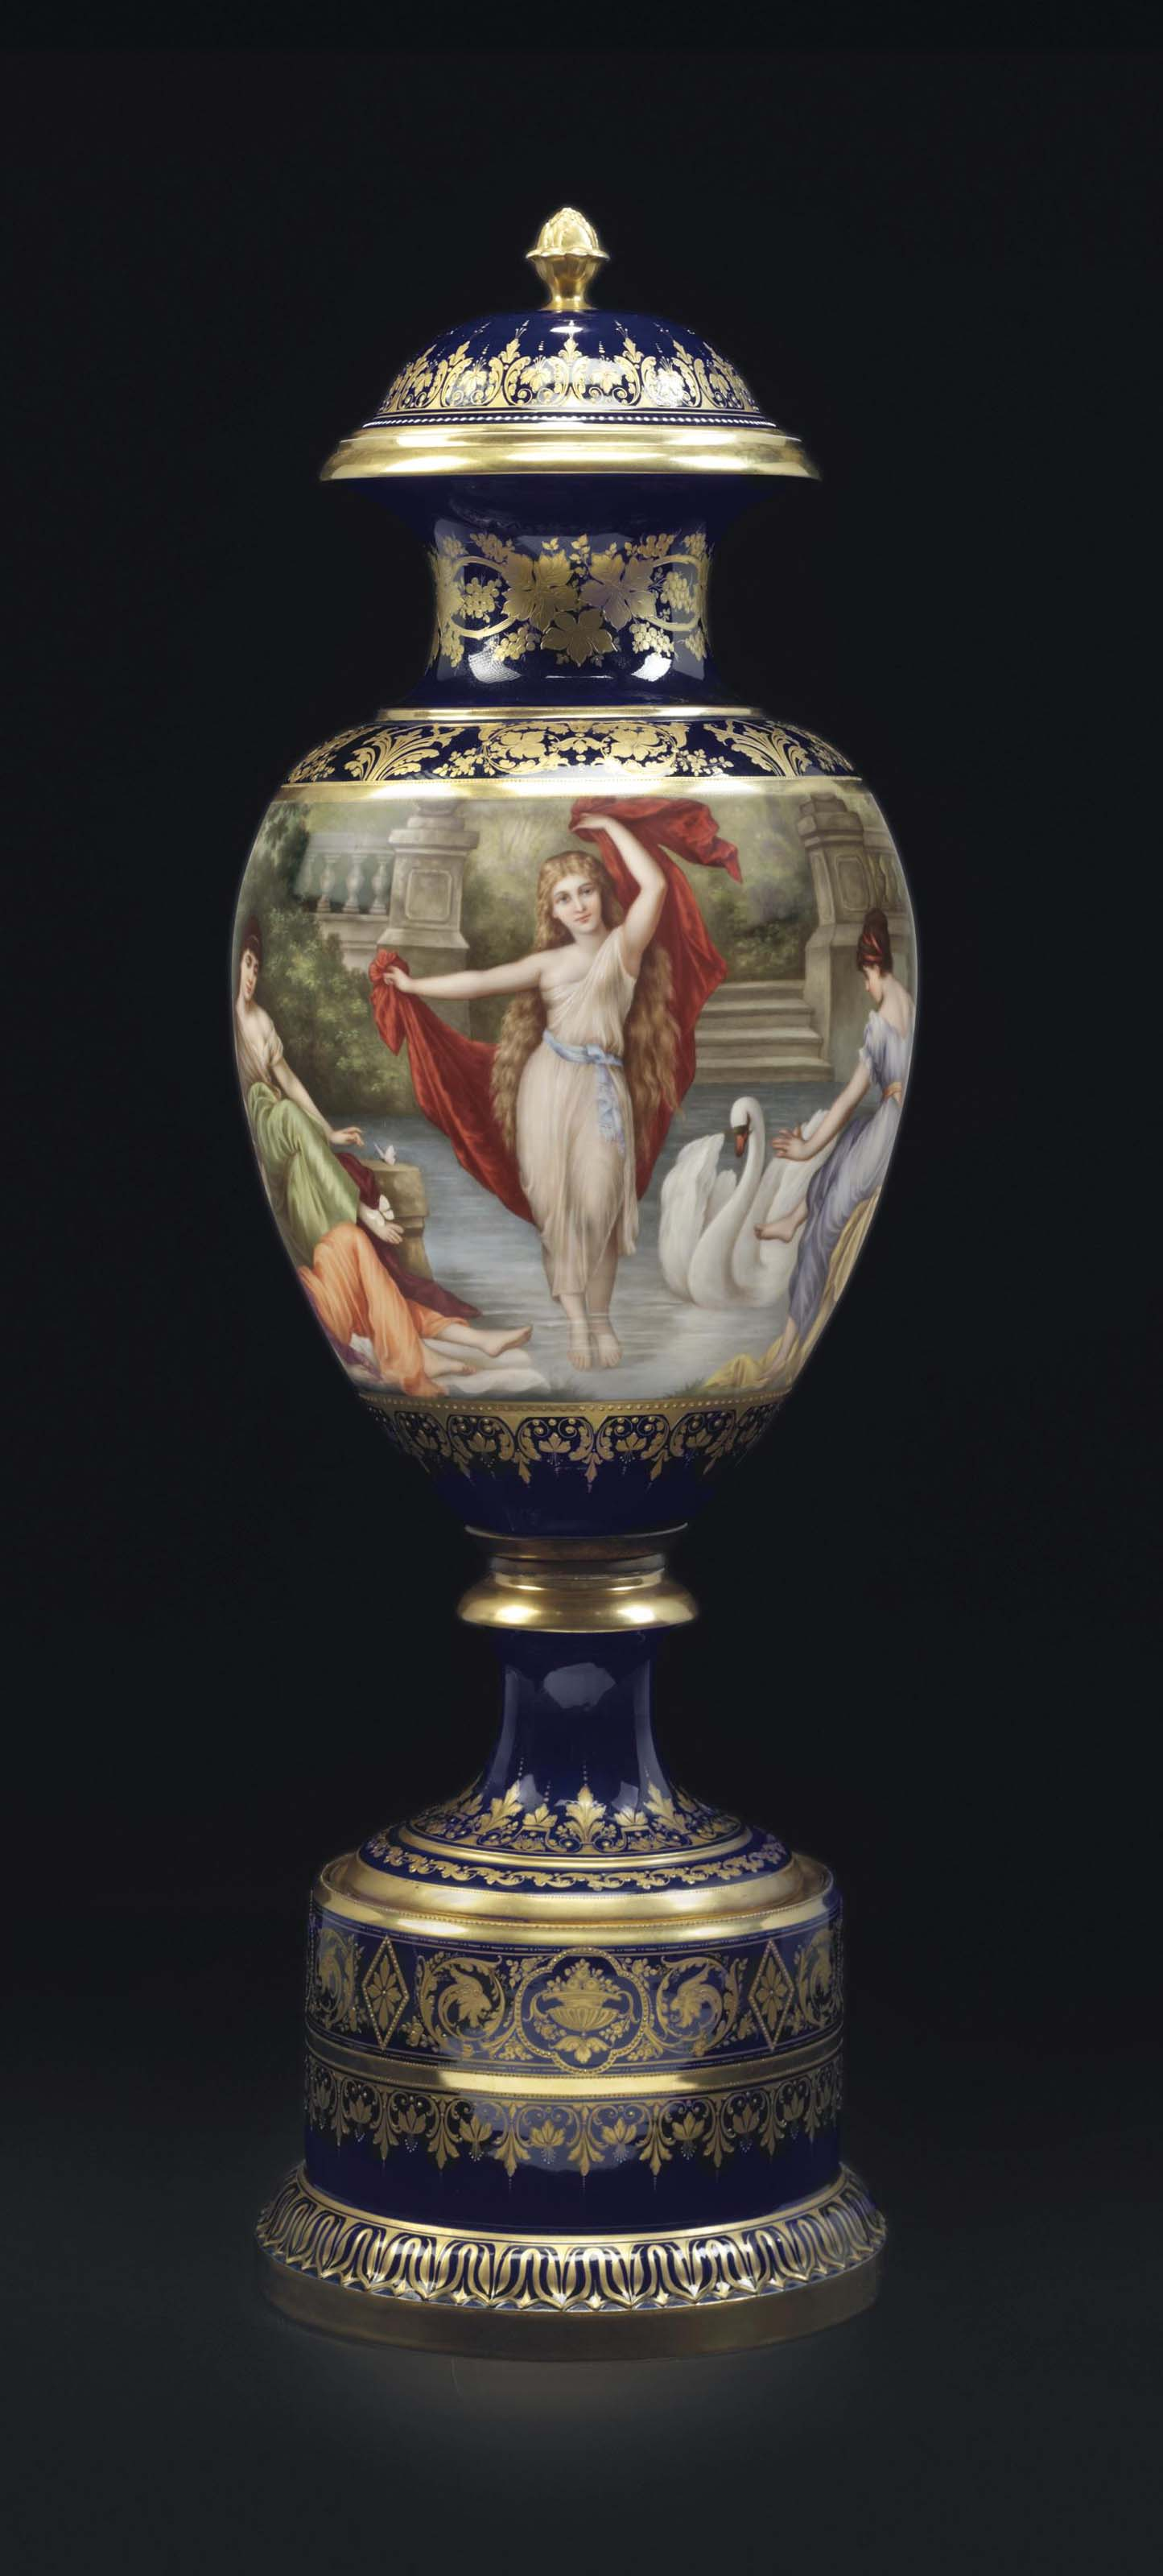 A VIENNA STYLE PORCELAIN COBALT-BLUE GROUND VASE, COVER AND STAND